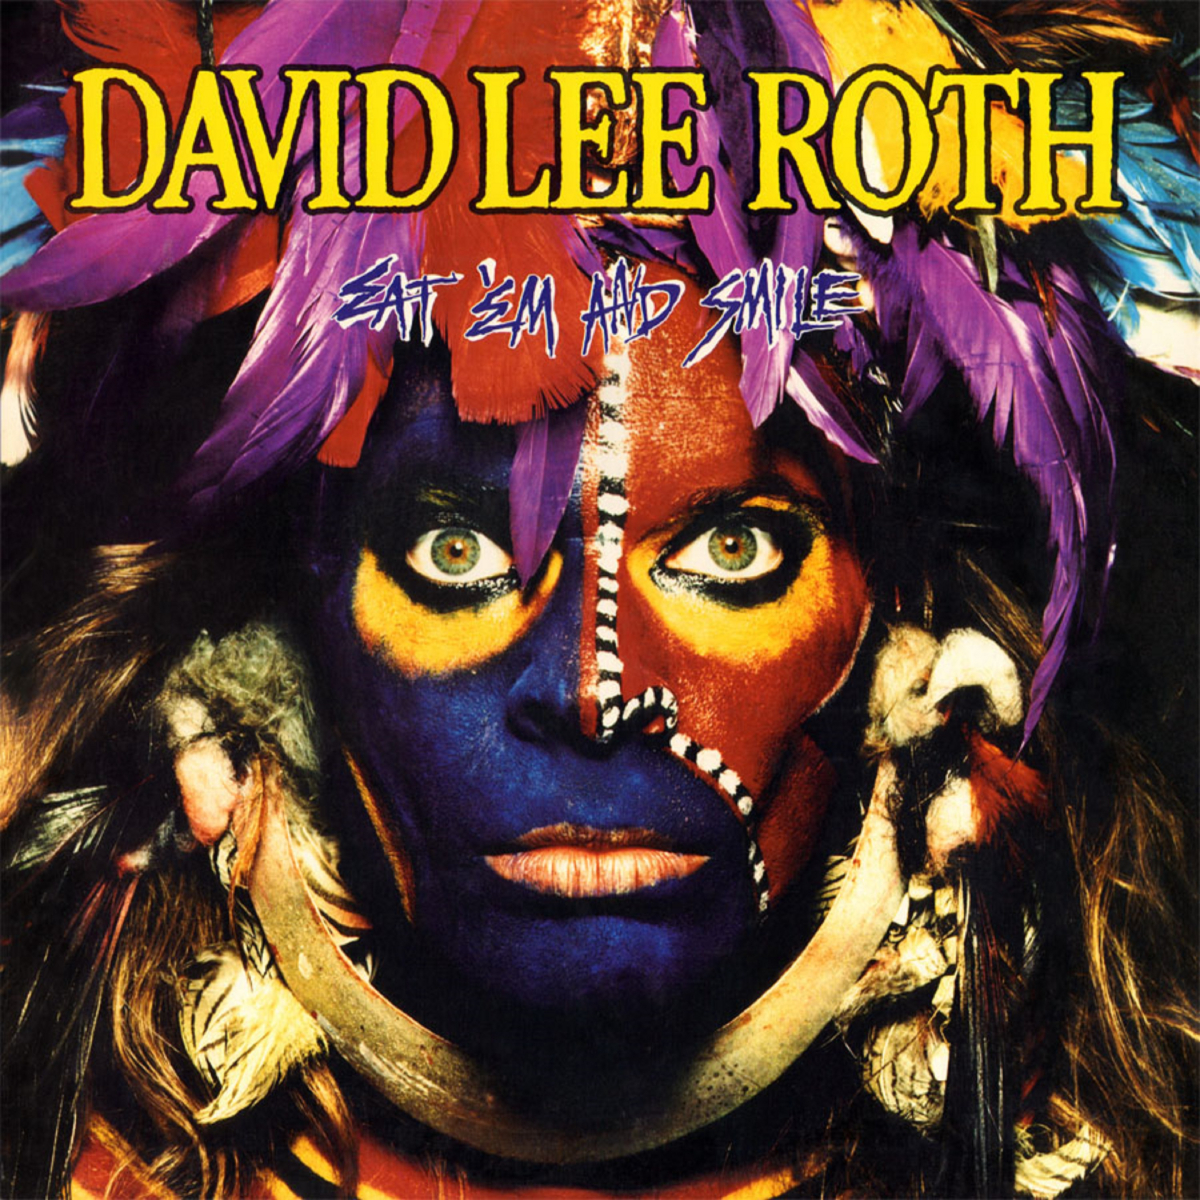 David Lee Roth - Eat 'Em And Smile (180 Gram Audiophile Vinyl/35th Anniversary Limited Edition/Gatefold Cover)